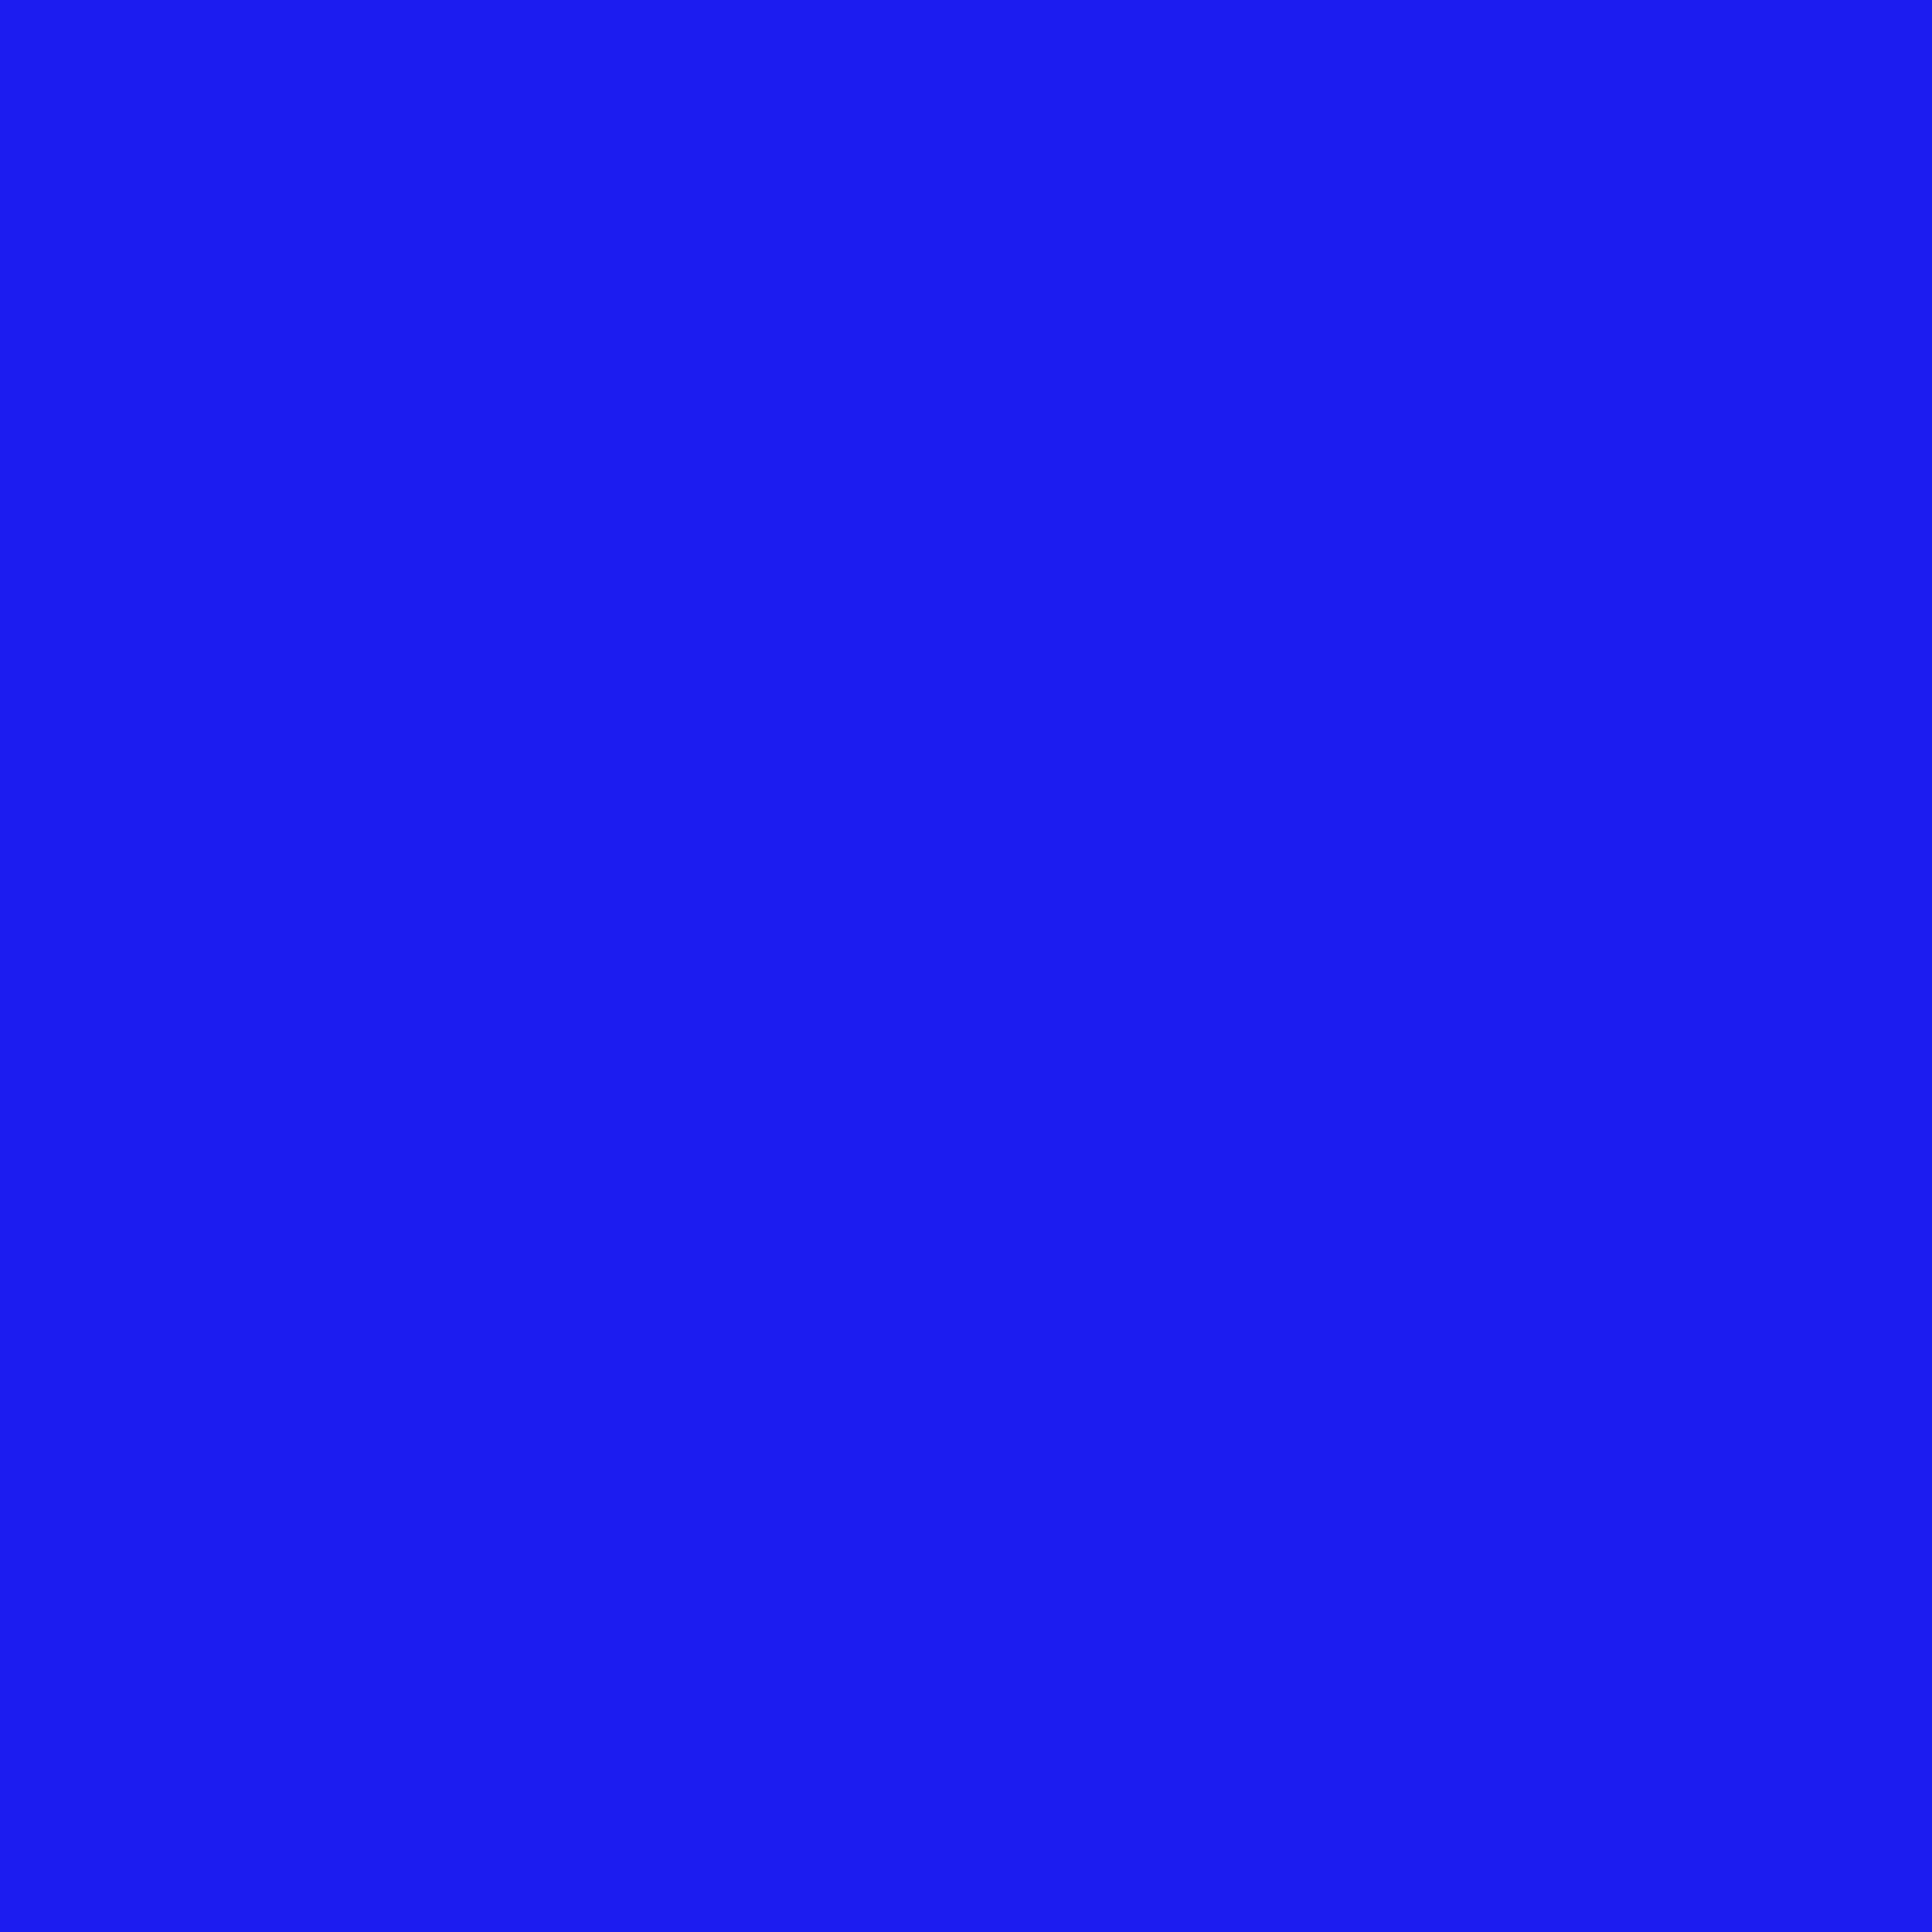 2048x2048 Bluebonnet Solid Color Background